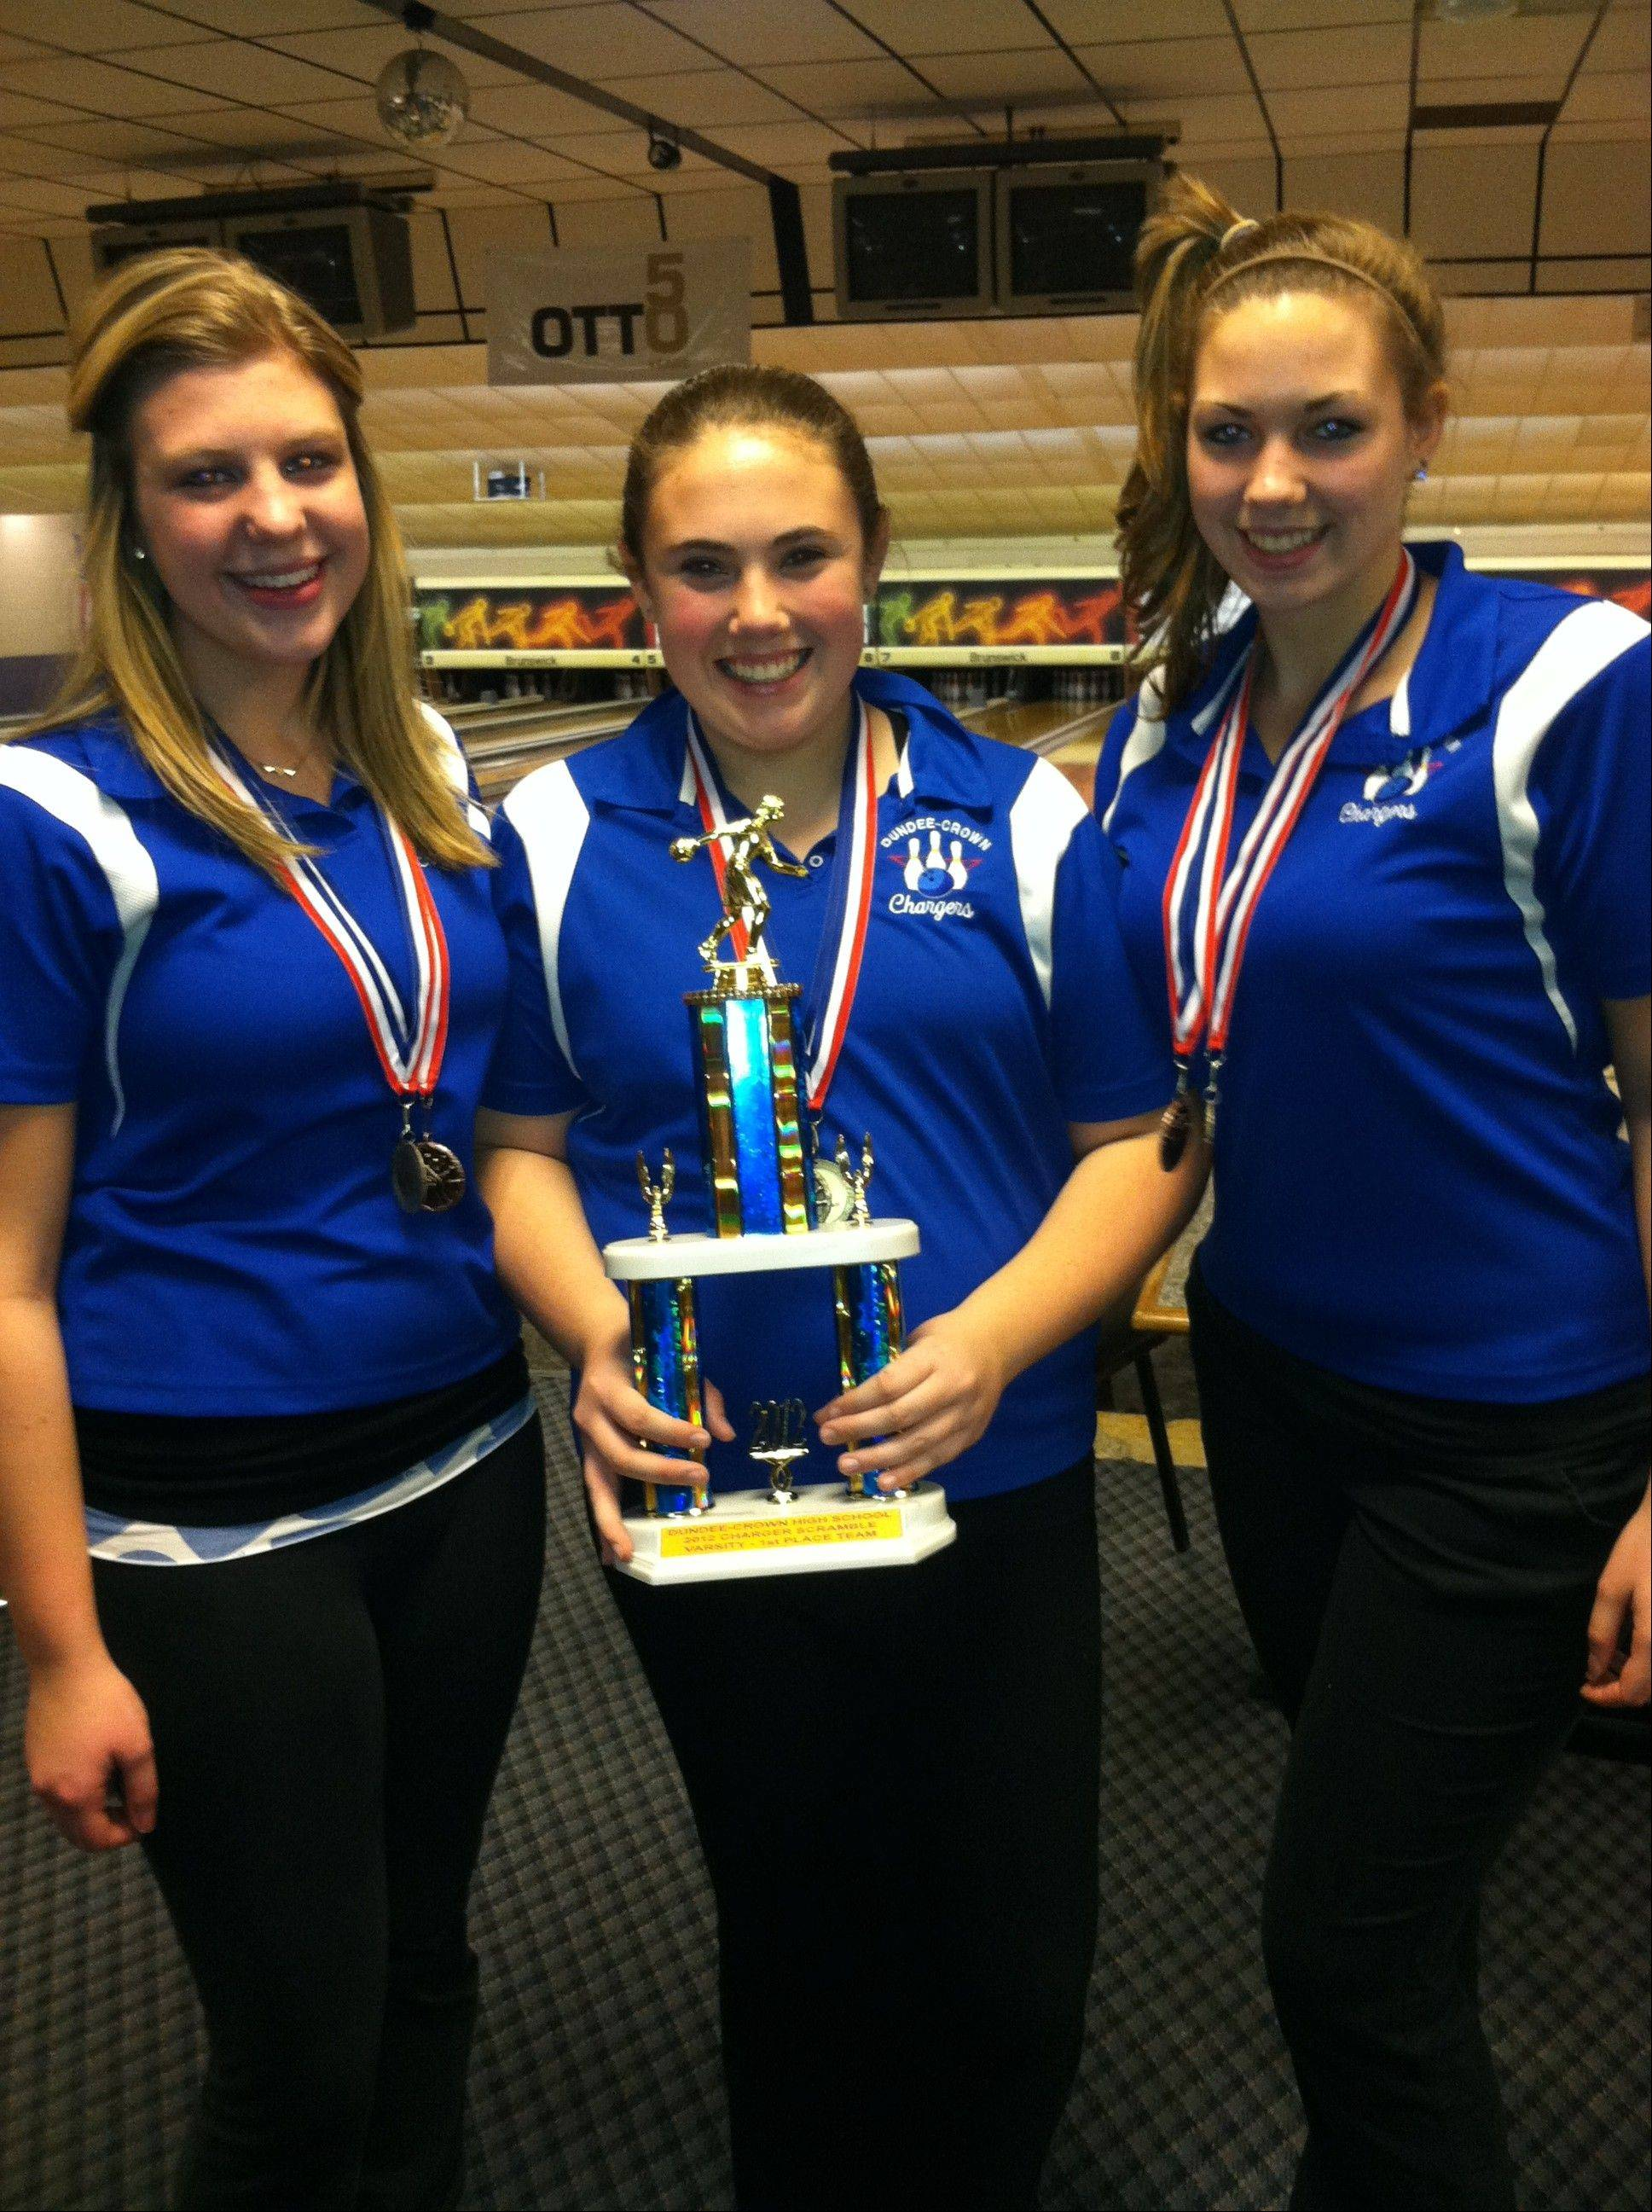 The Dundee-Crown girls bowling team won the recent Charger Scramble, led by Amanda Smith, from left, Karissa Gonio and Angie Tripp.